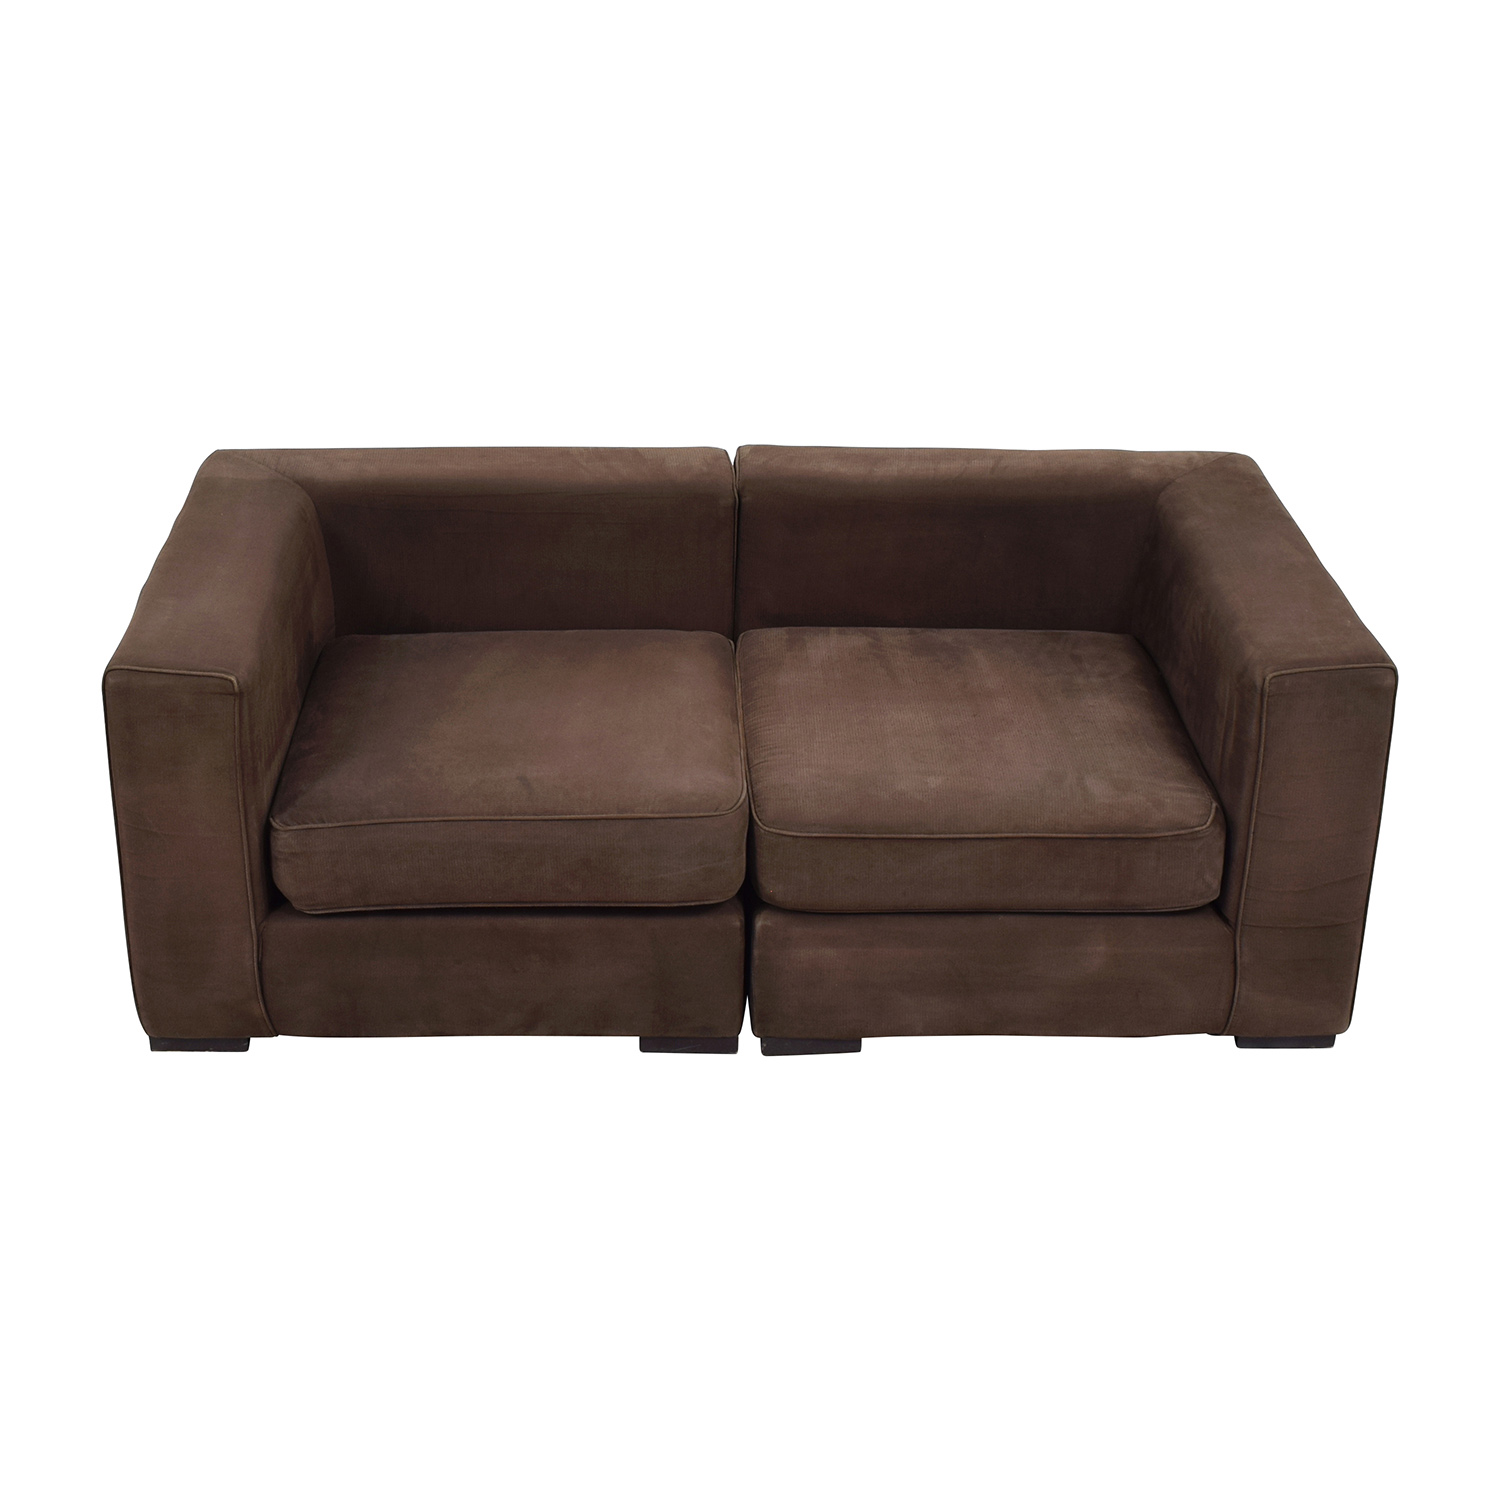 West Elm Brown Modular Sofa West Elm